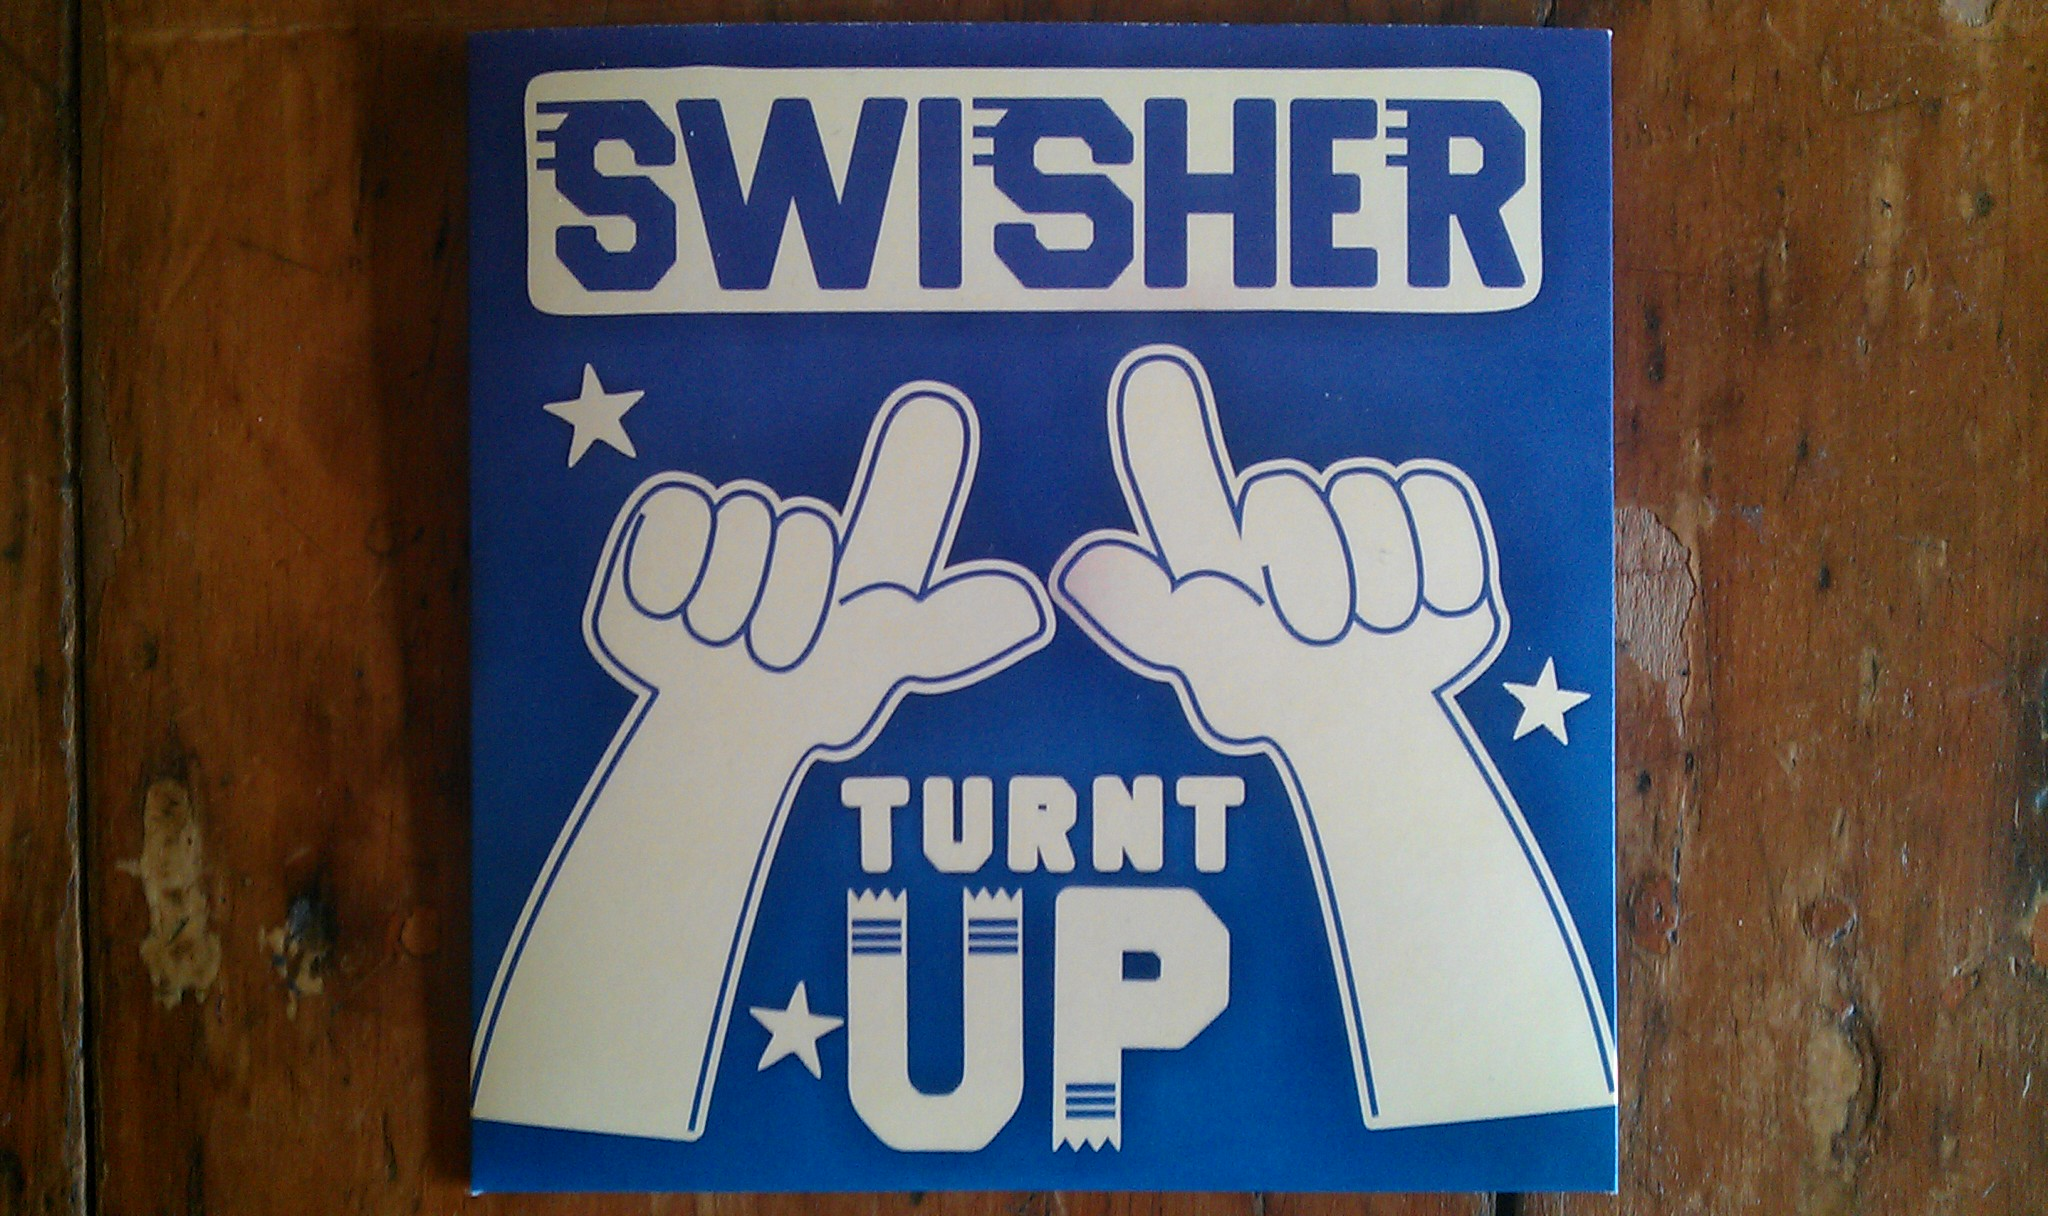 Swisher - Turnt Up - CD Front